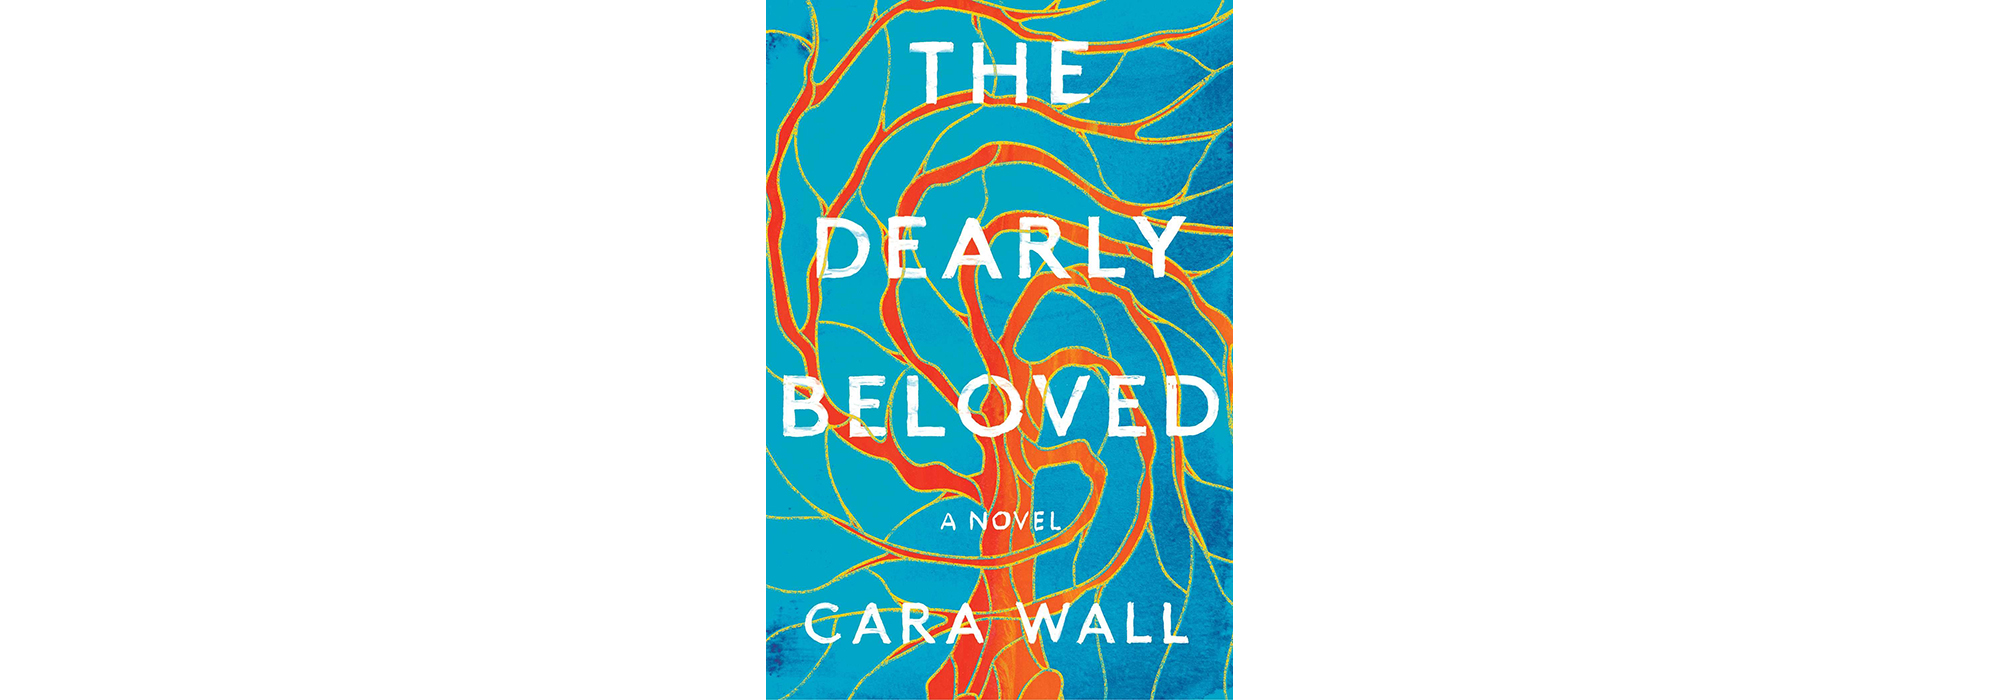 The Dearly Beloved, by Cara Wall